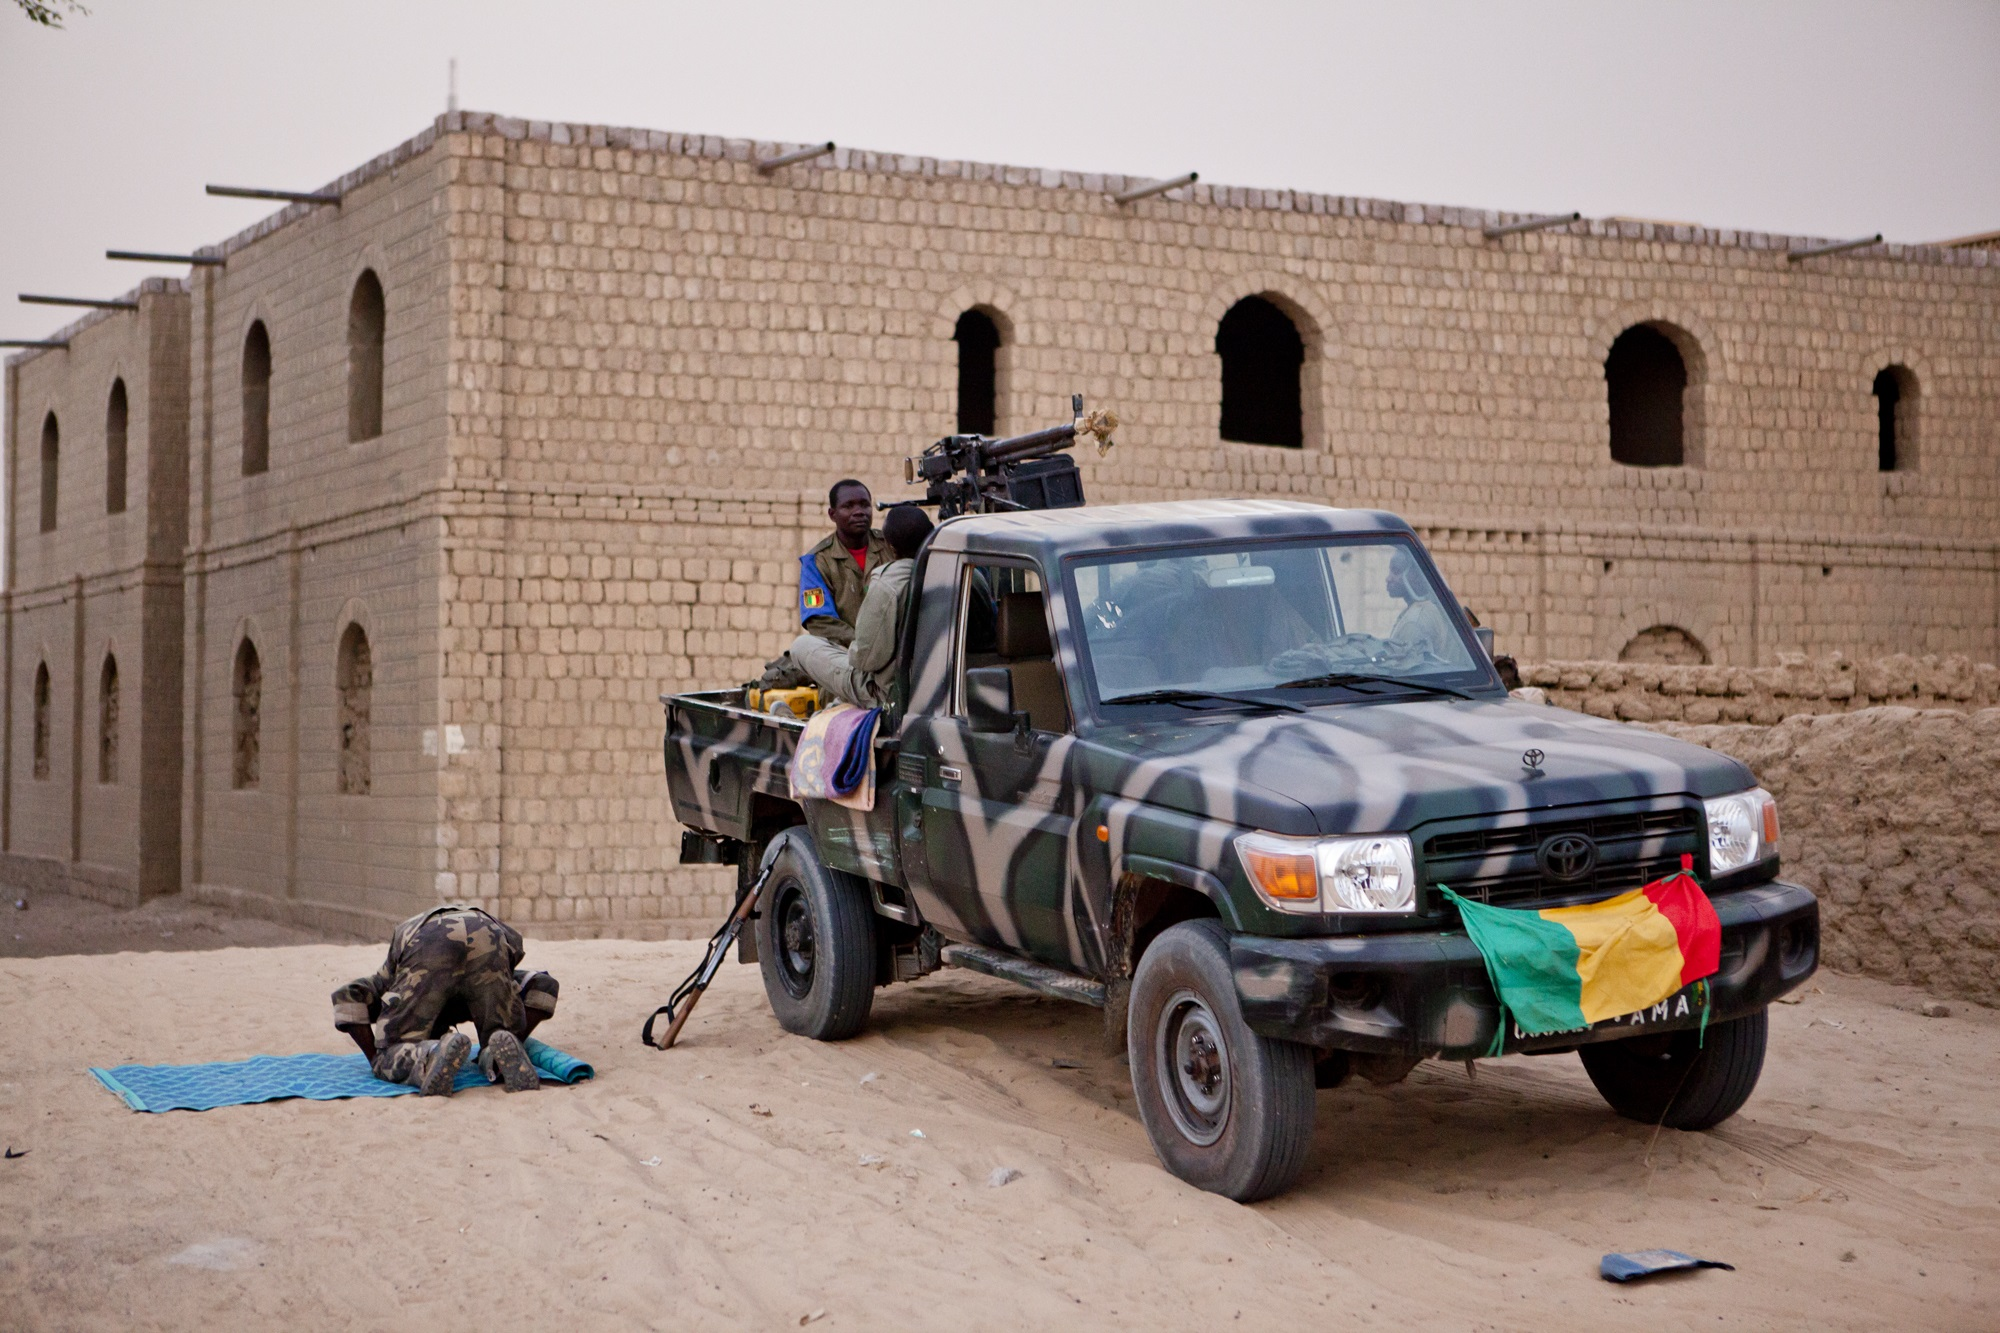 Malian soldiers in Timbuktu